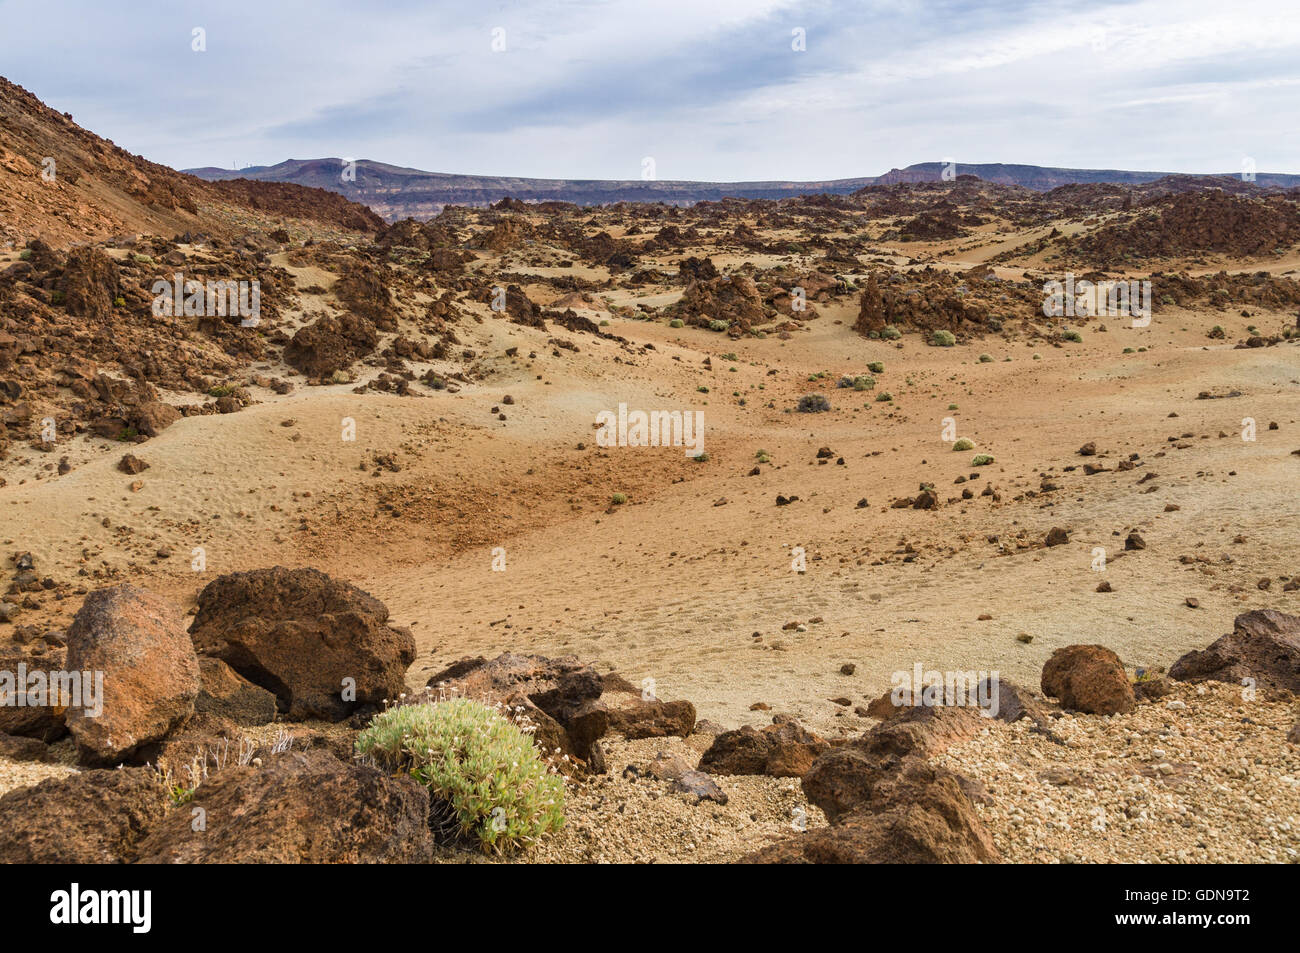 Volcanic landscape with sparse vegetation, Teide National park, Tenerife, Spain - Stock Image